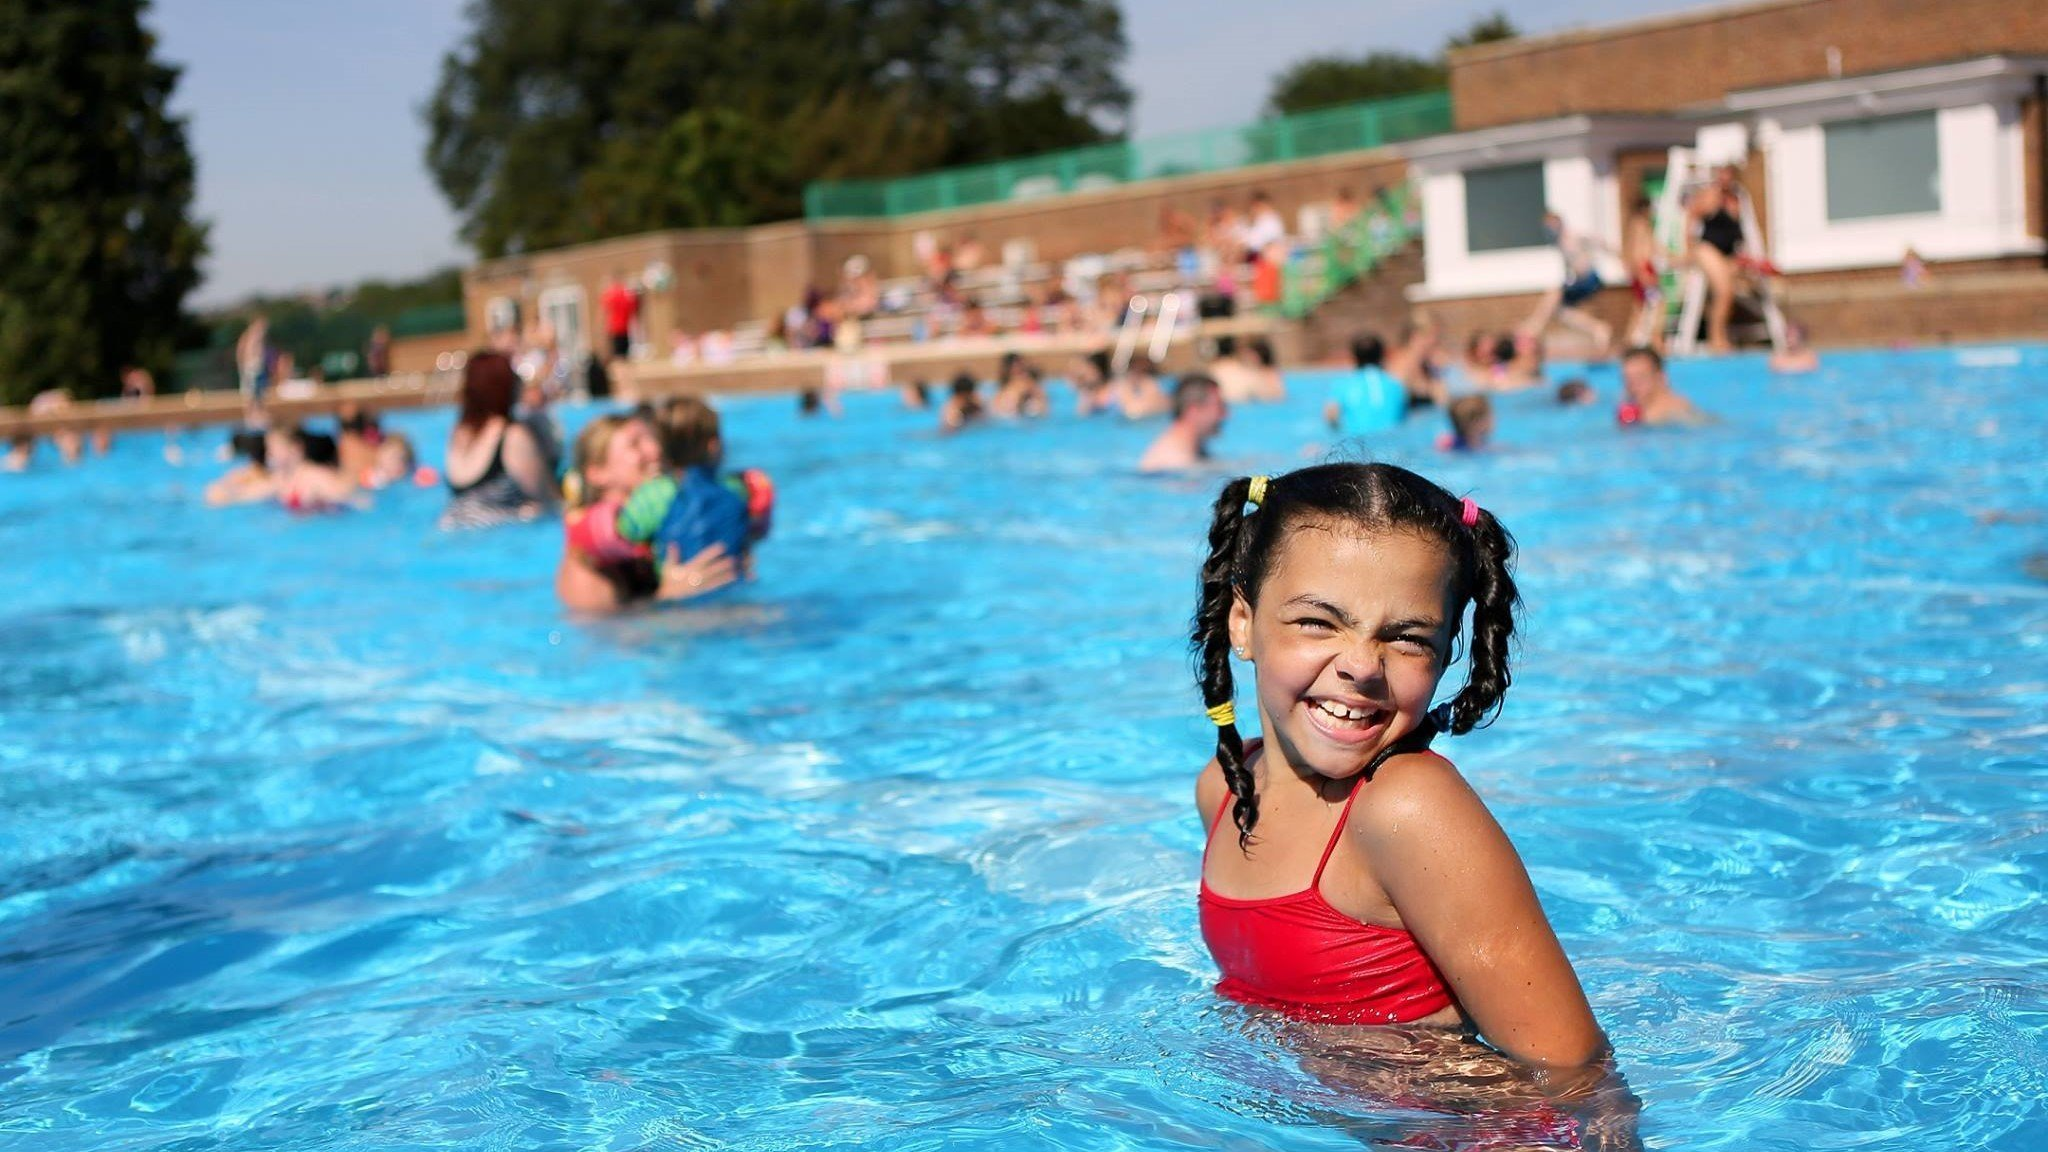 All the places to go swimming outdoors and indoors in Oxfordshire